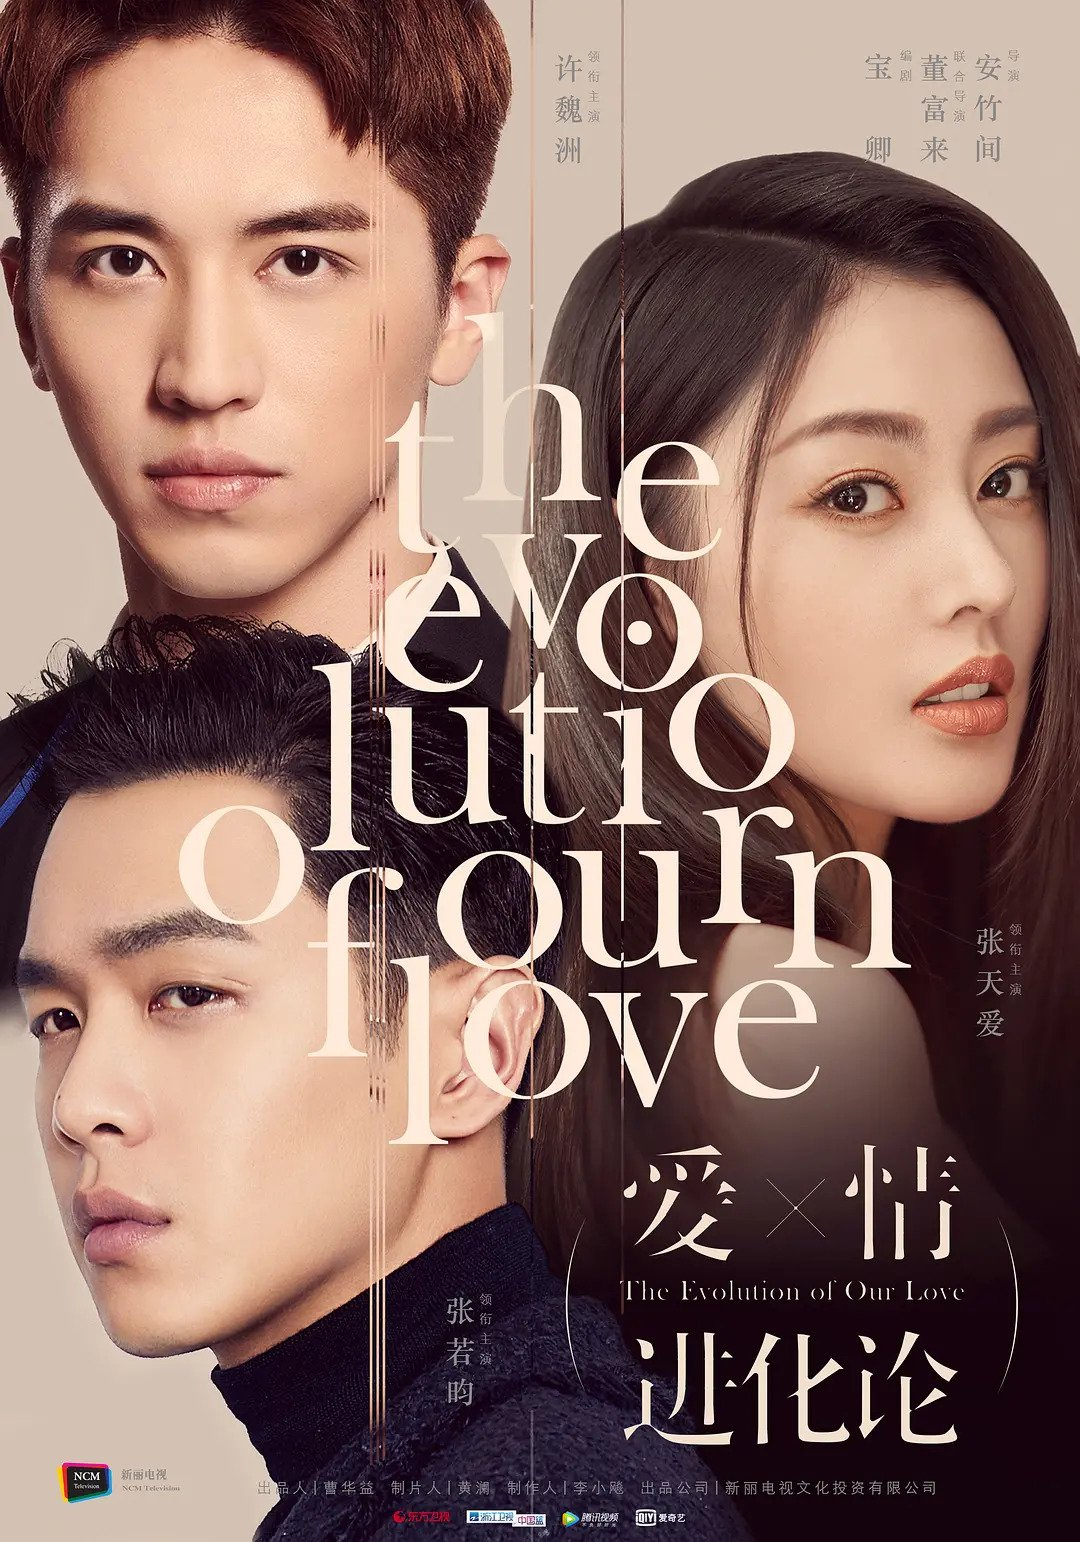 The Evolution of Our Love (2018) / 爱情进化论